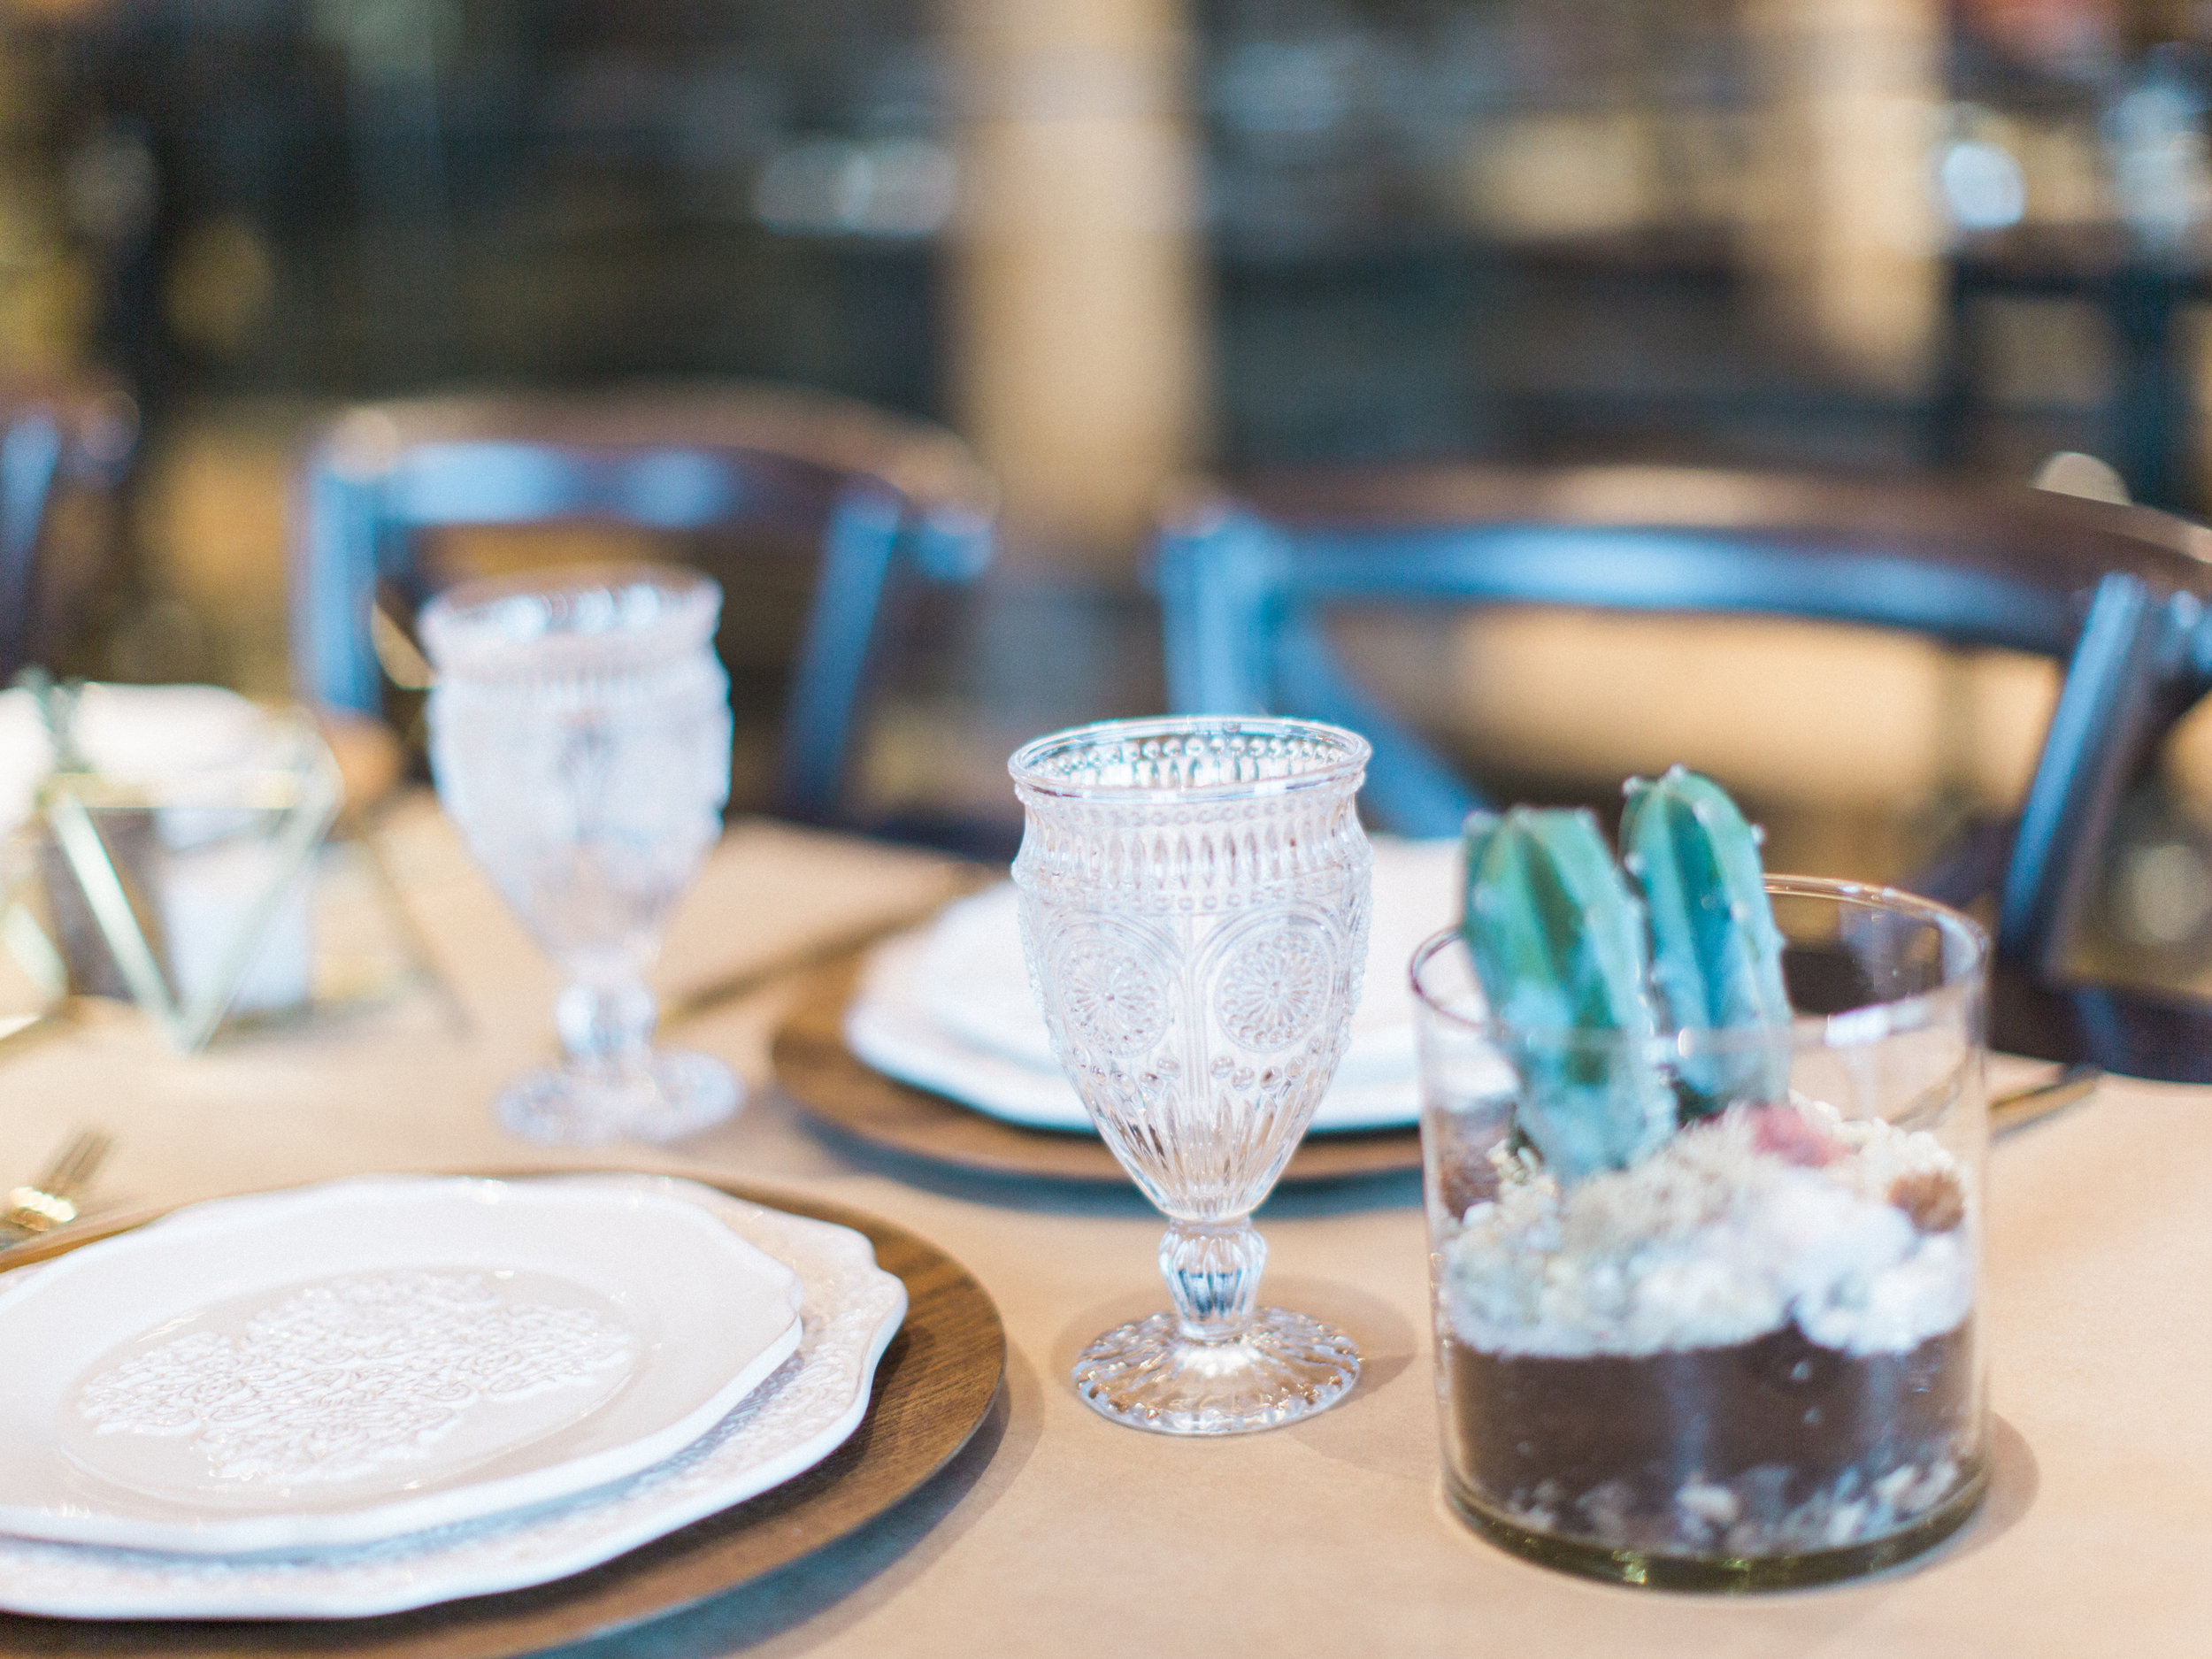 Get the look: wood charger plate, modern ornate dinner and salad plates, clear hobnail goblet